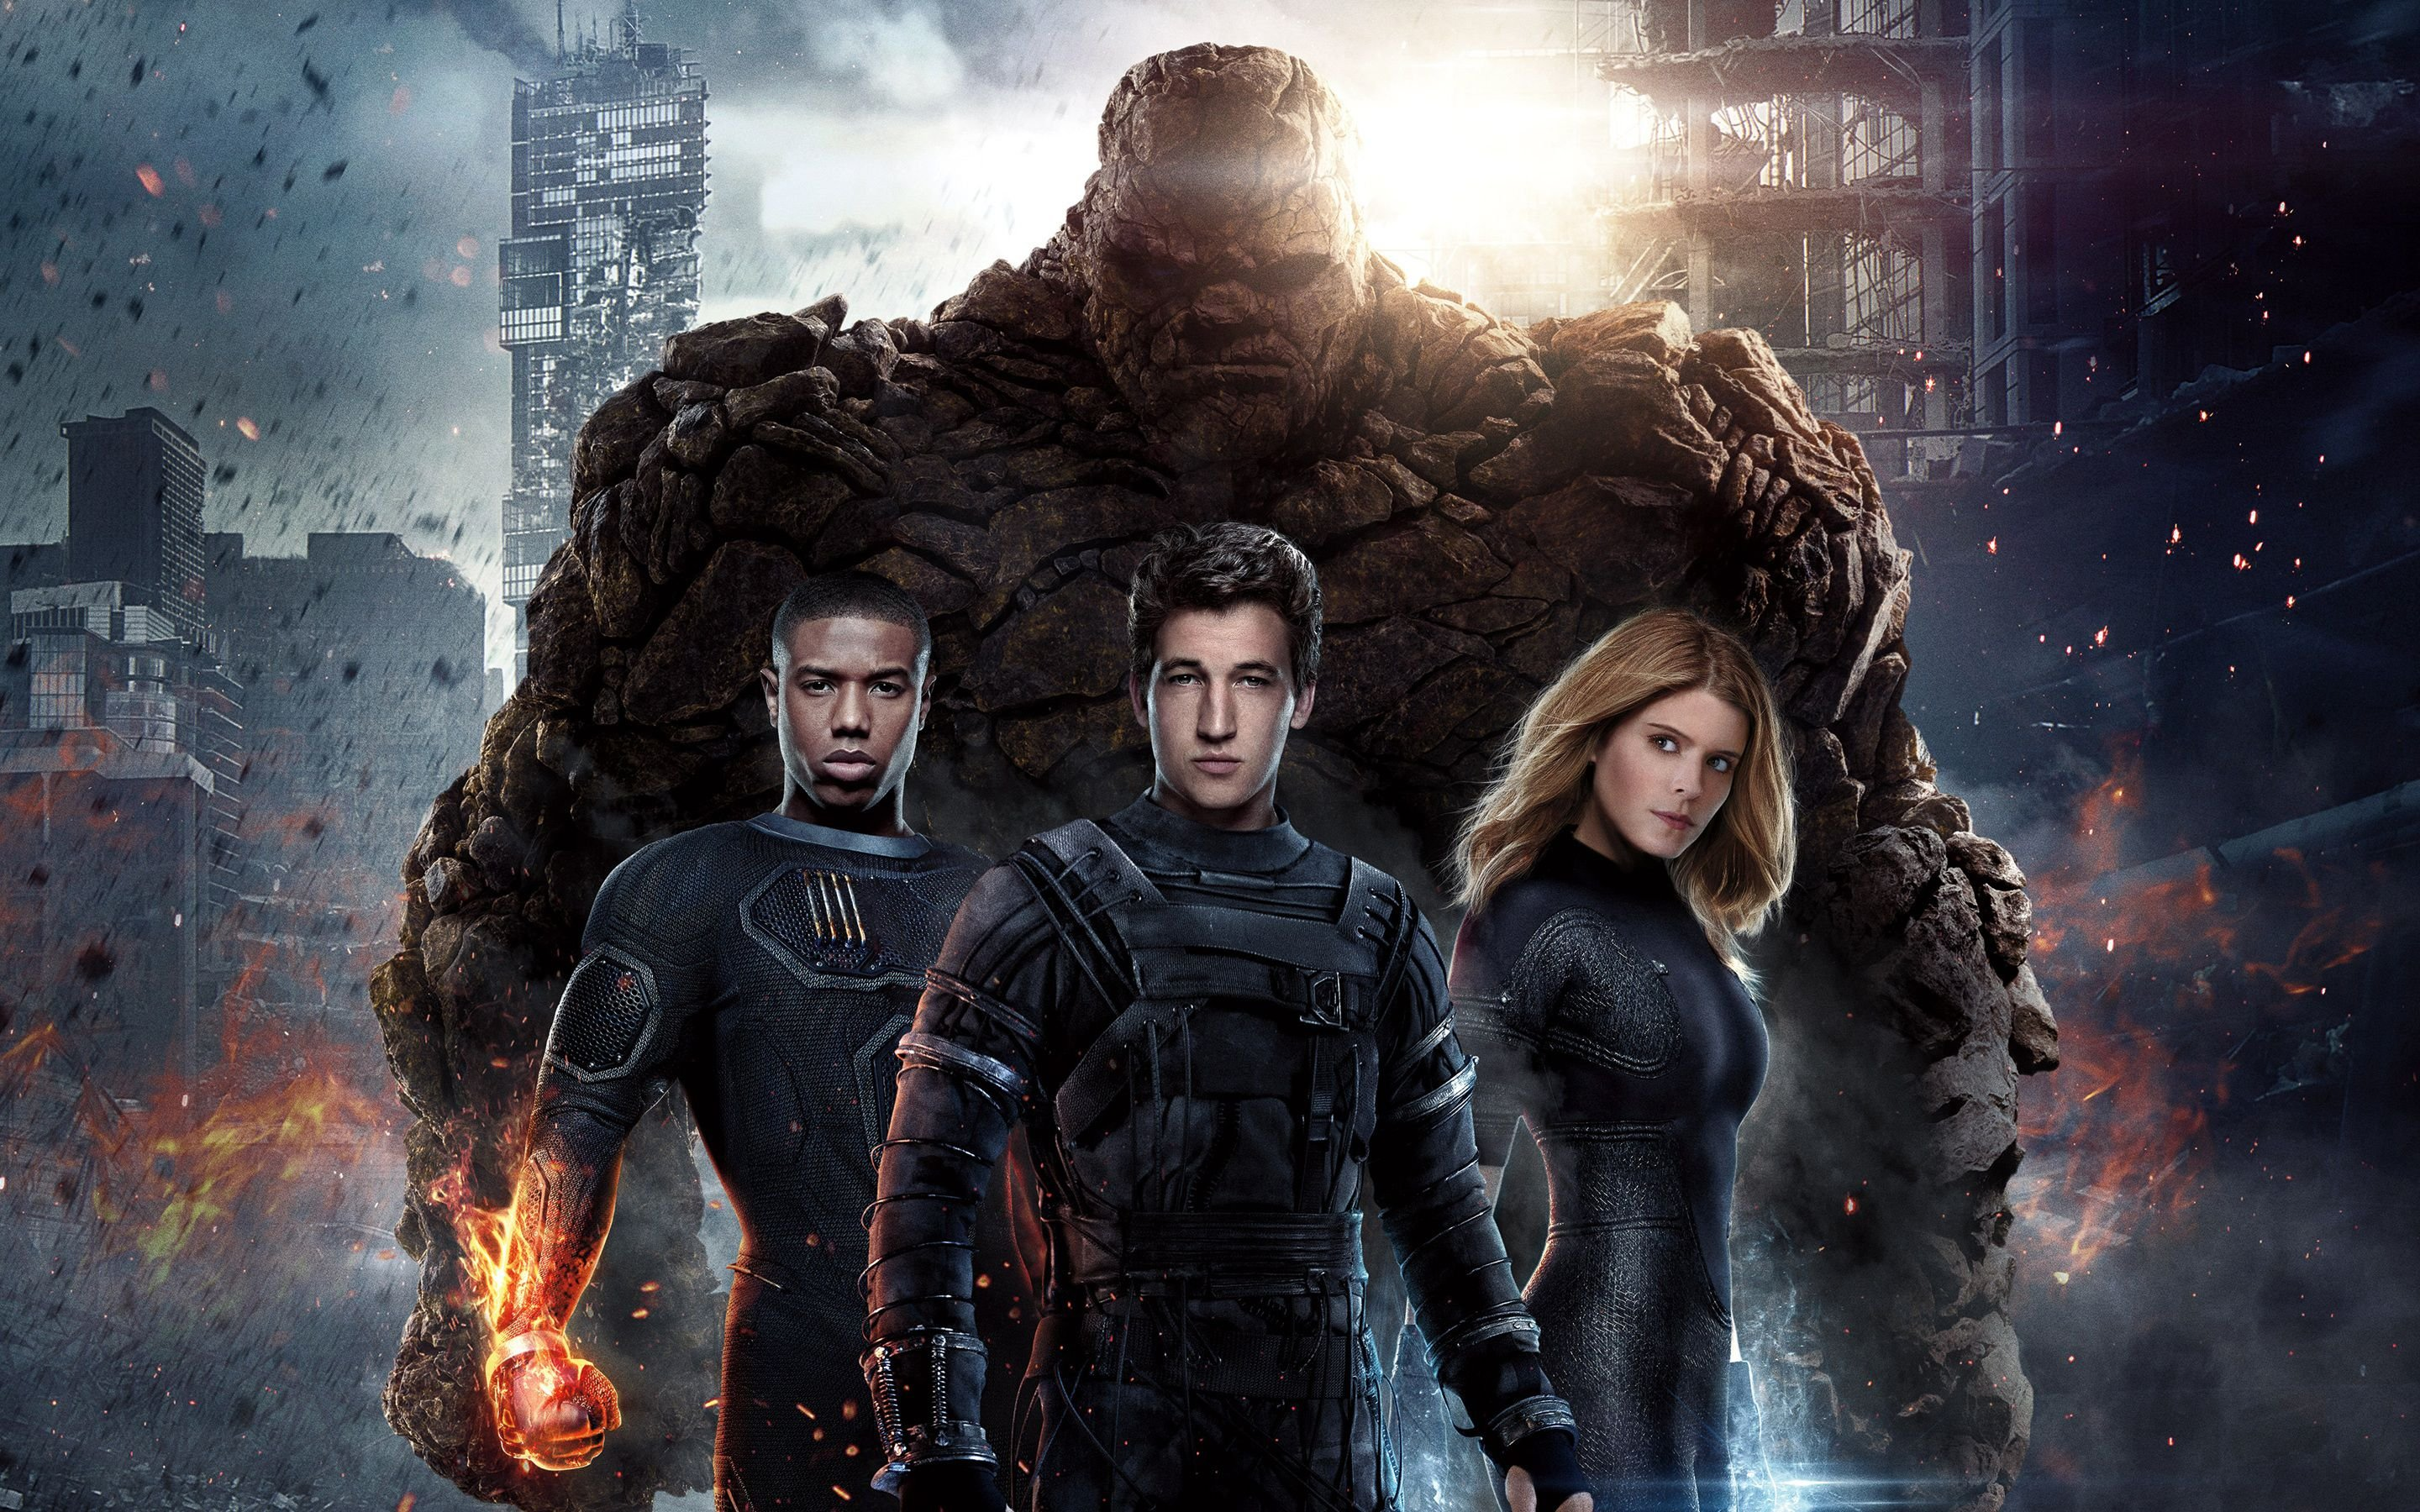 2014 movies released in may and june